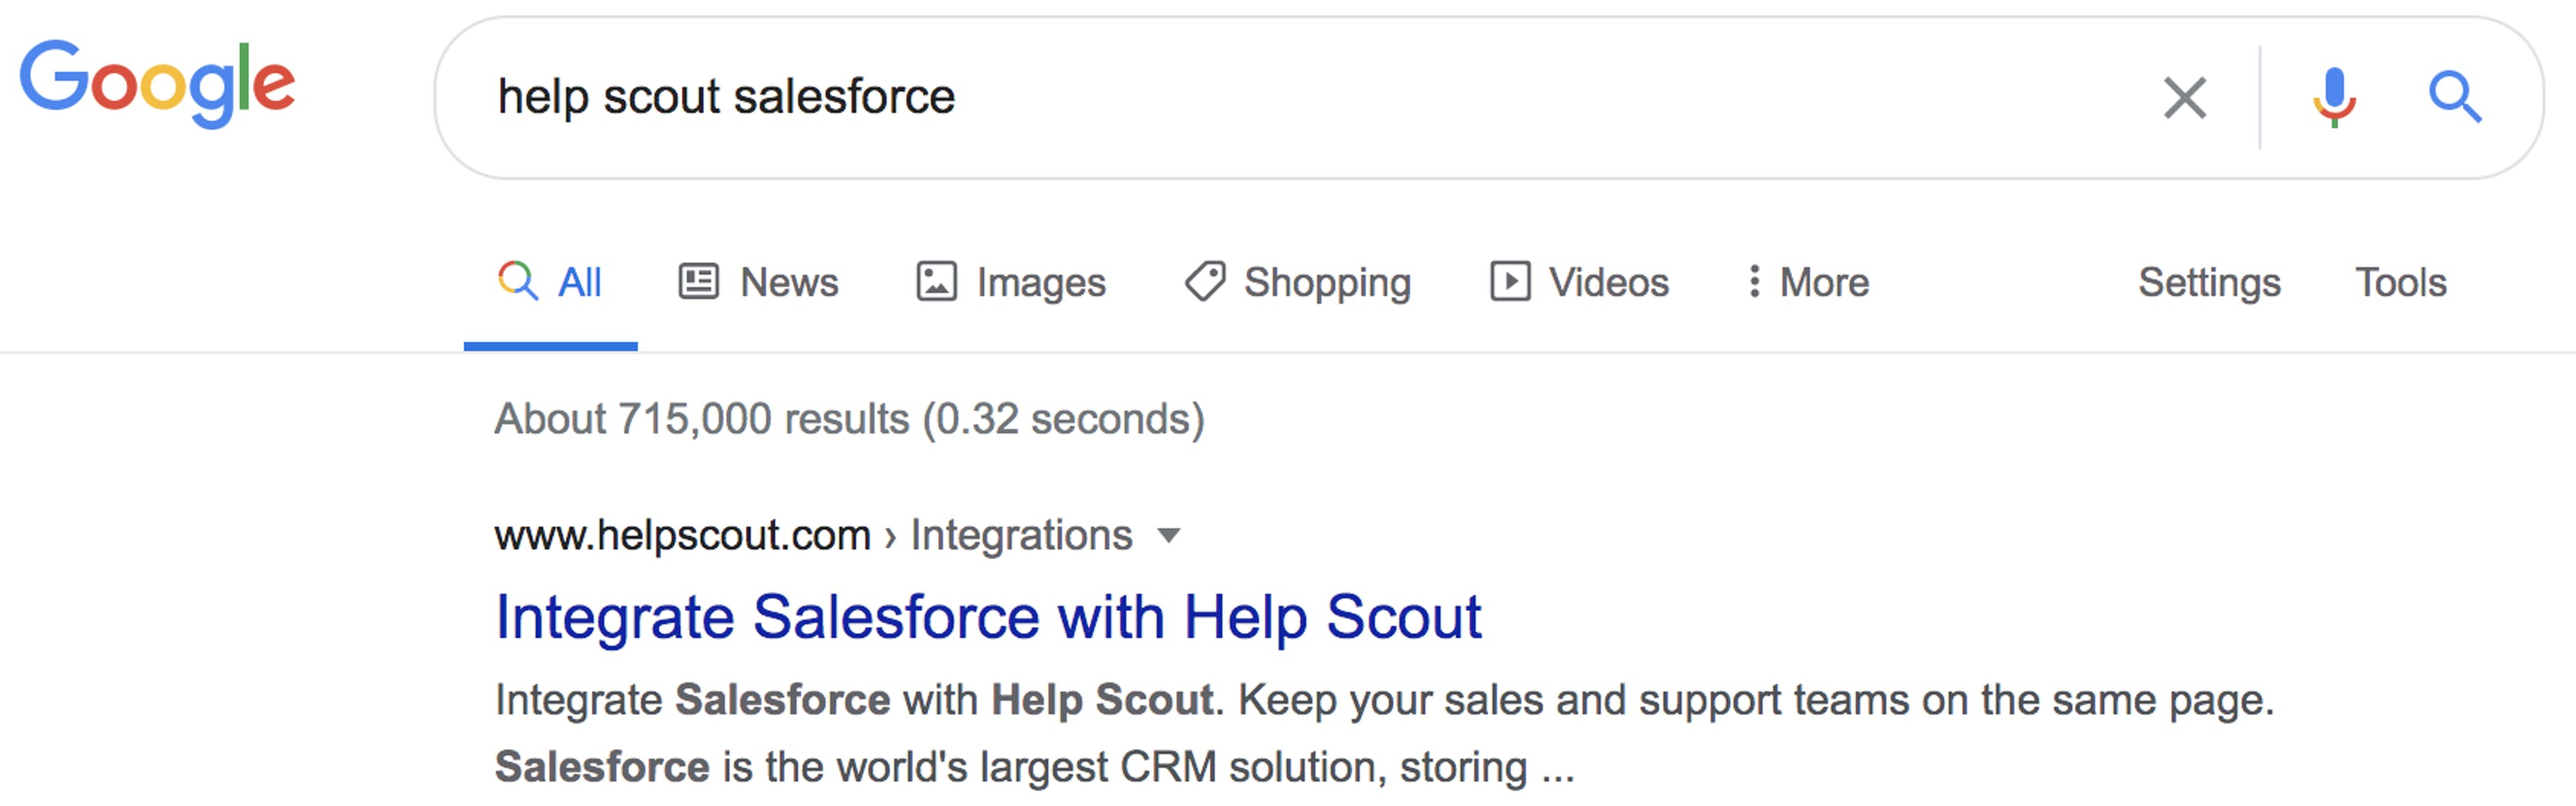 screenshot of a google search result title and description